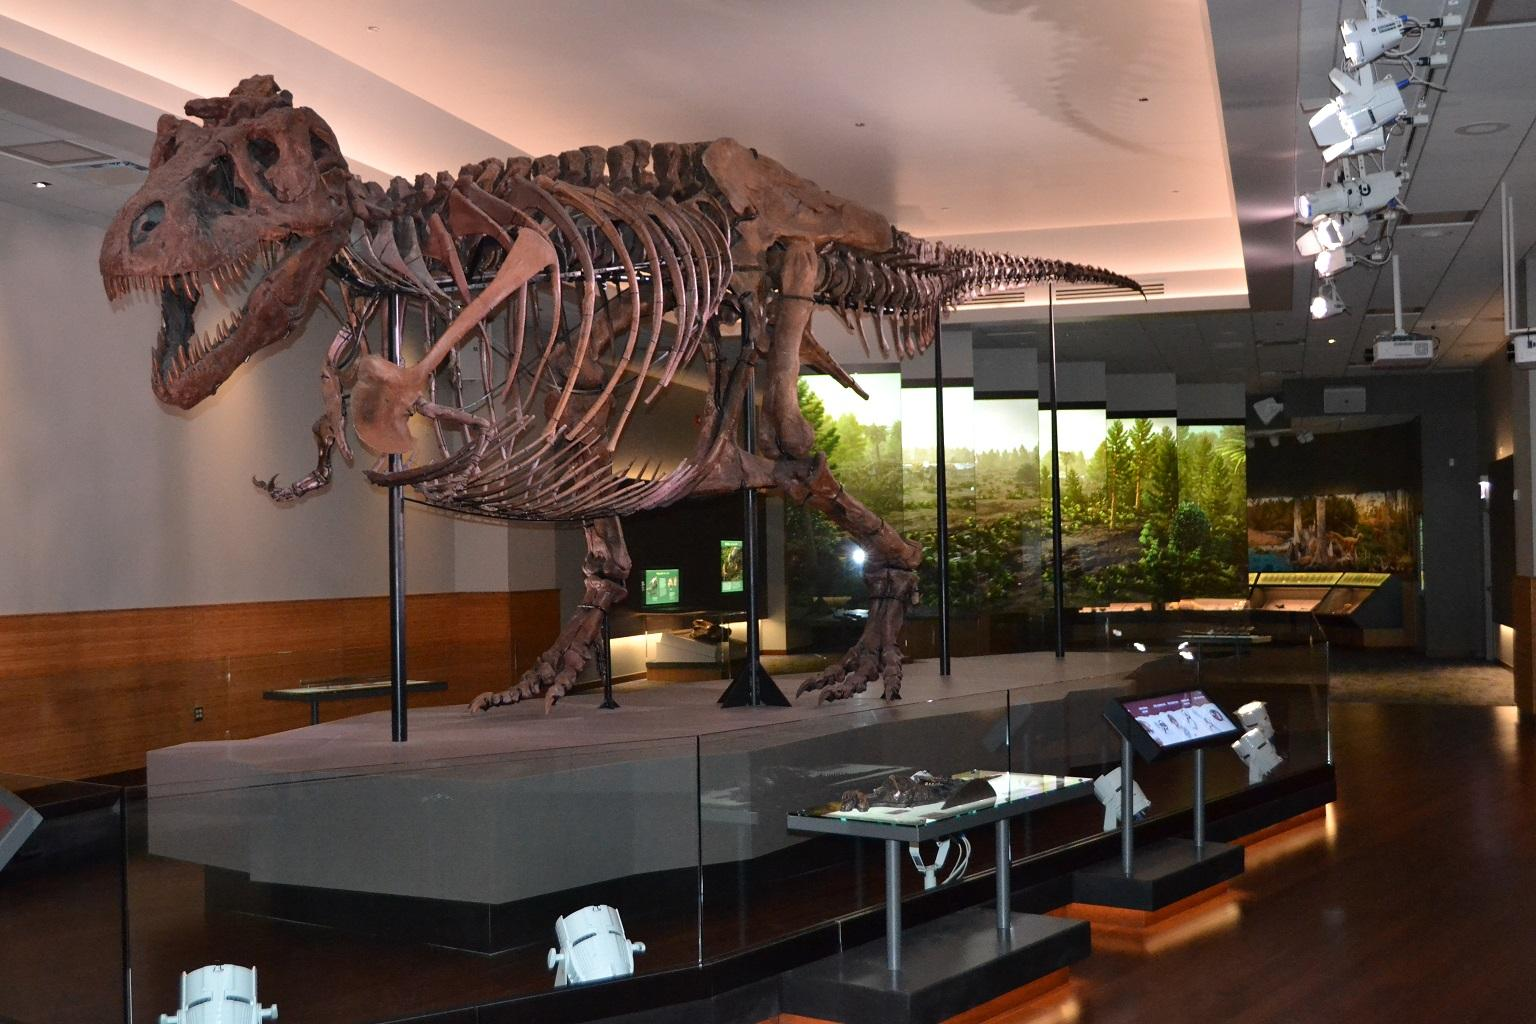 Sue measures 40 feet long and 13 feet tall. The dinosaur weighed nine tons when it was alive some 67 million years ago. (Alex Ruppenthal / WTTW)